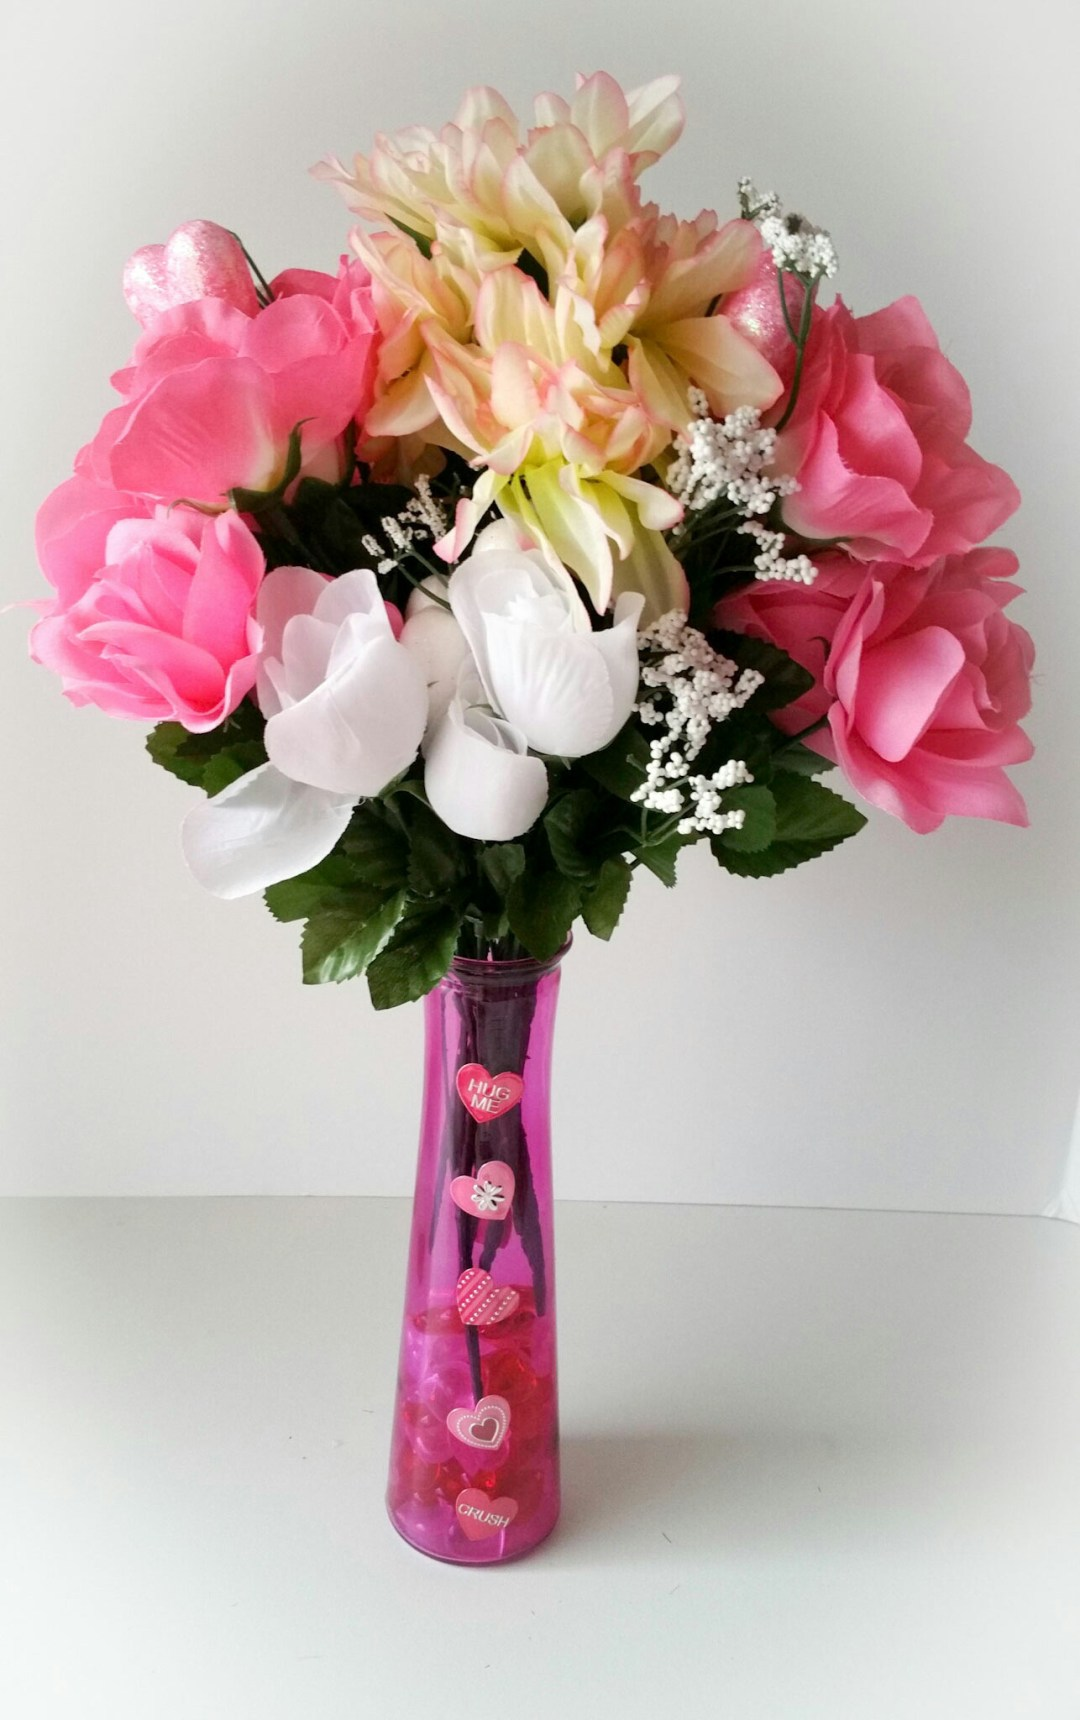 Super-Cute-DIY-Heart-Vase-Bouquet-Eleven-LiWBF